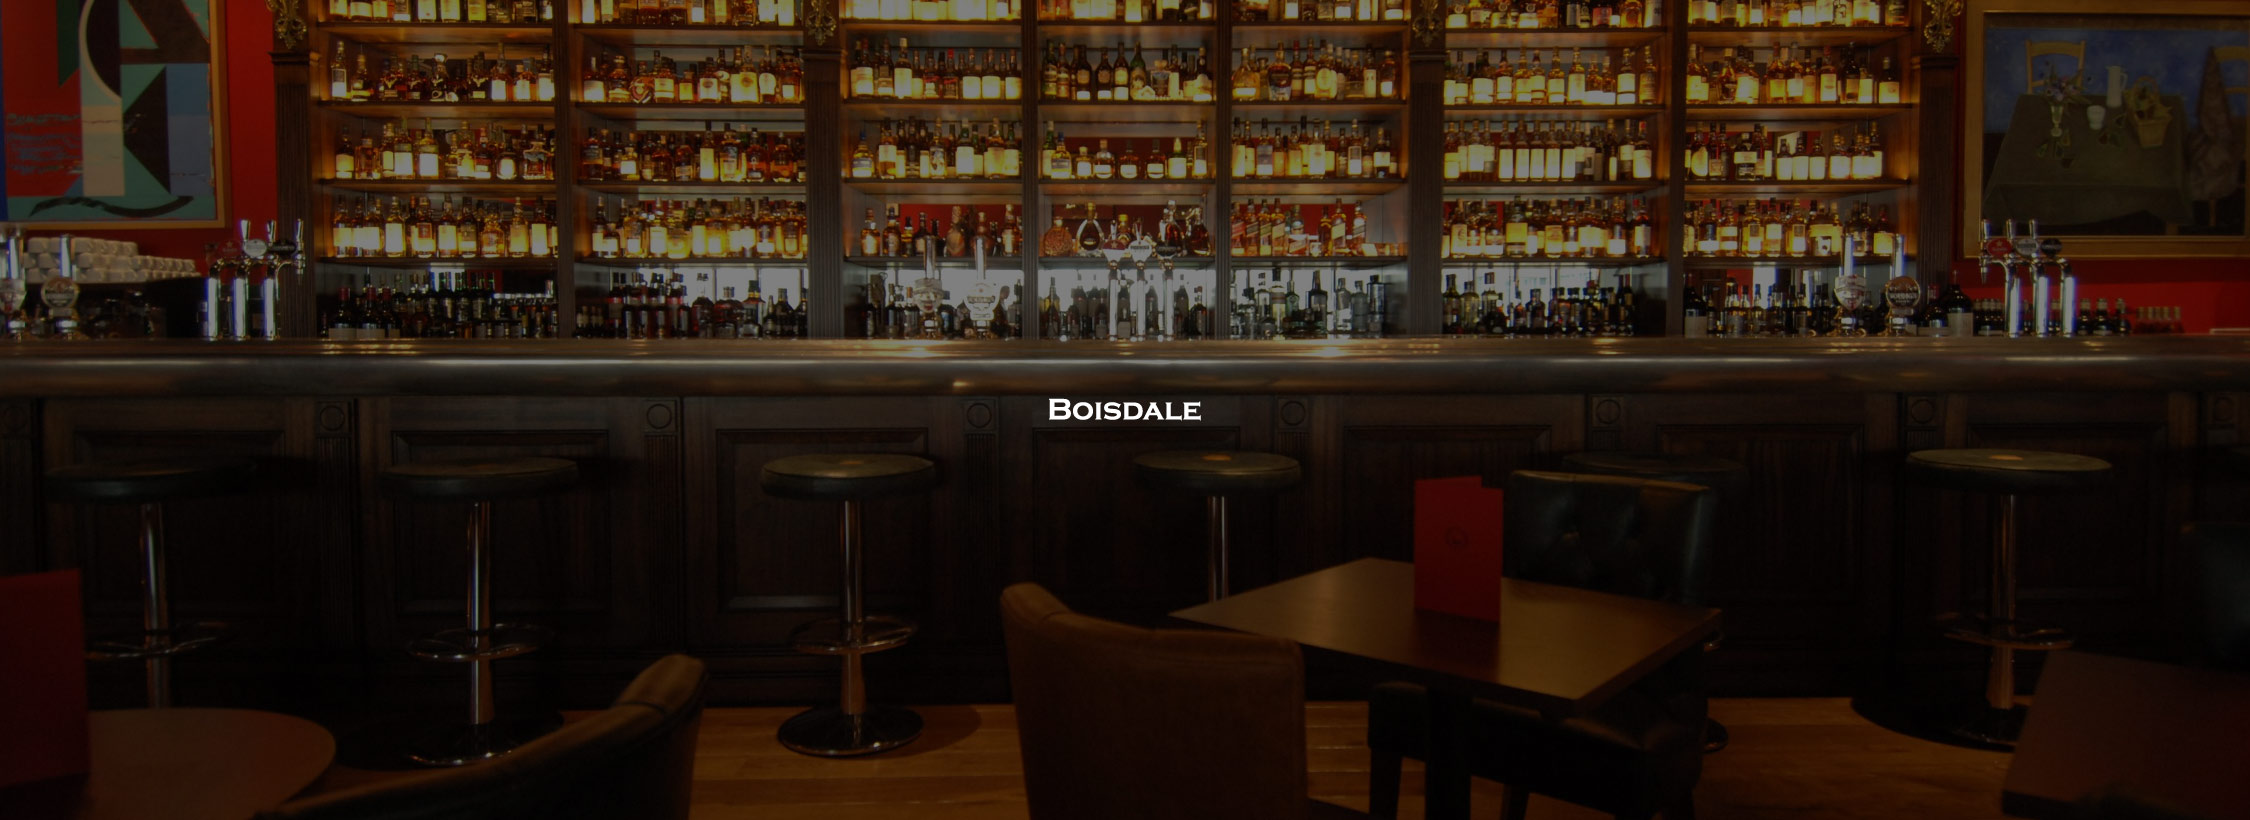 restaurants-supplied-boisdale-bg